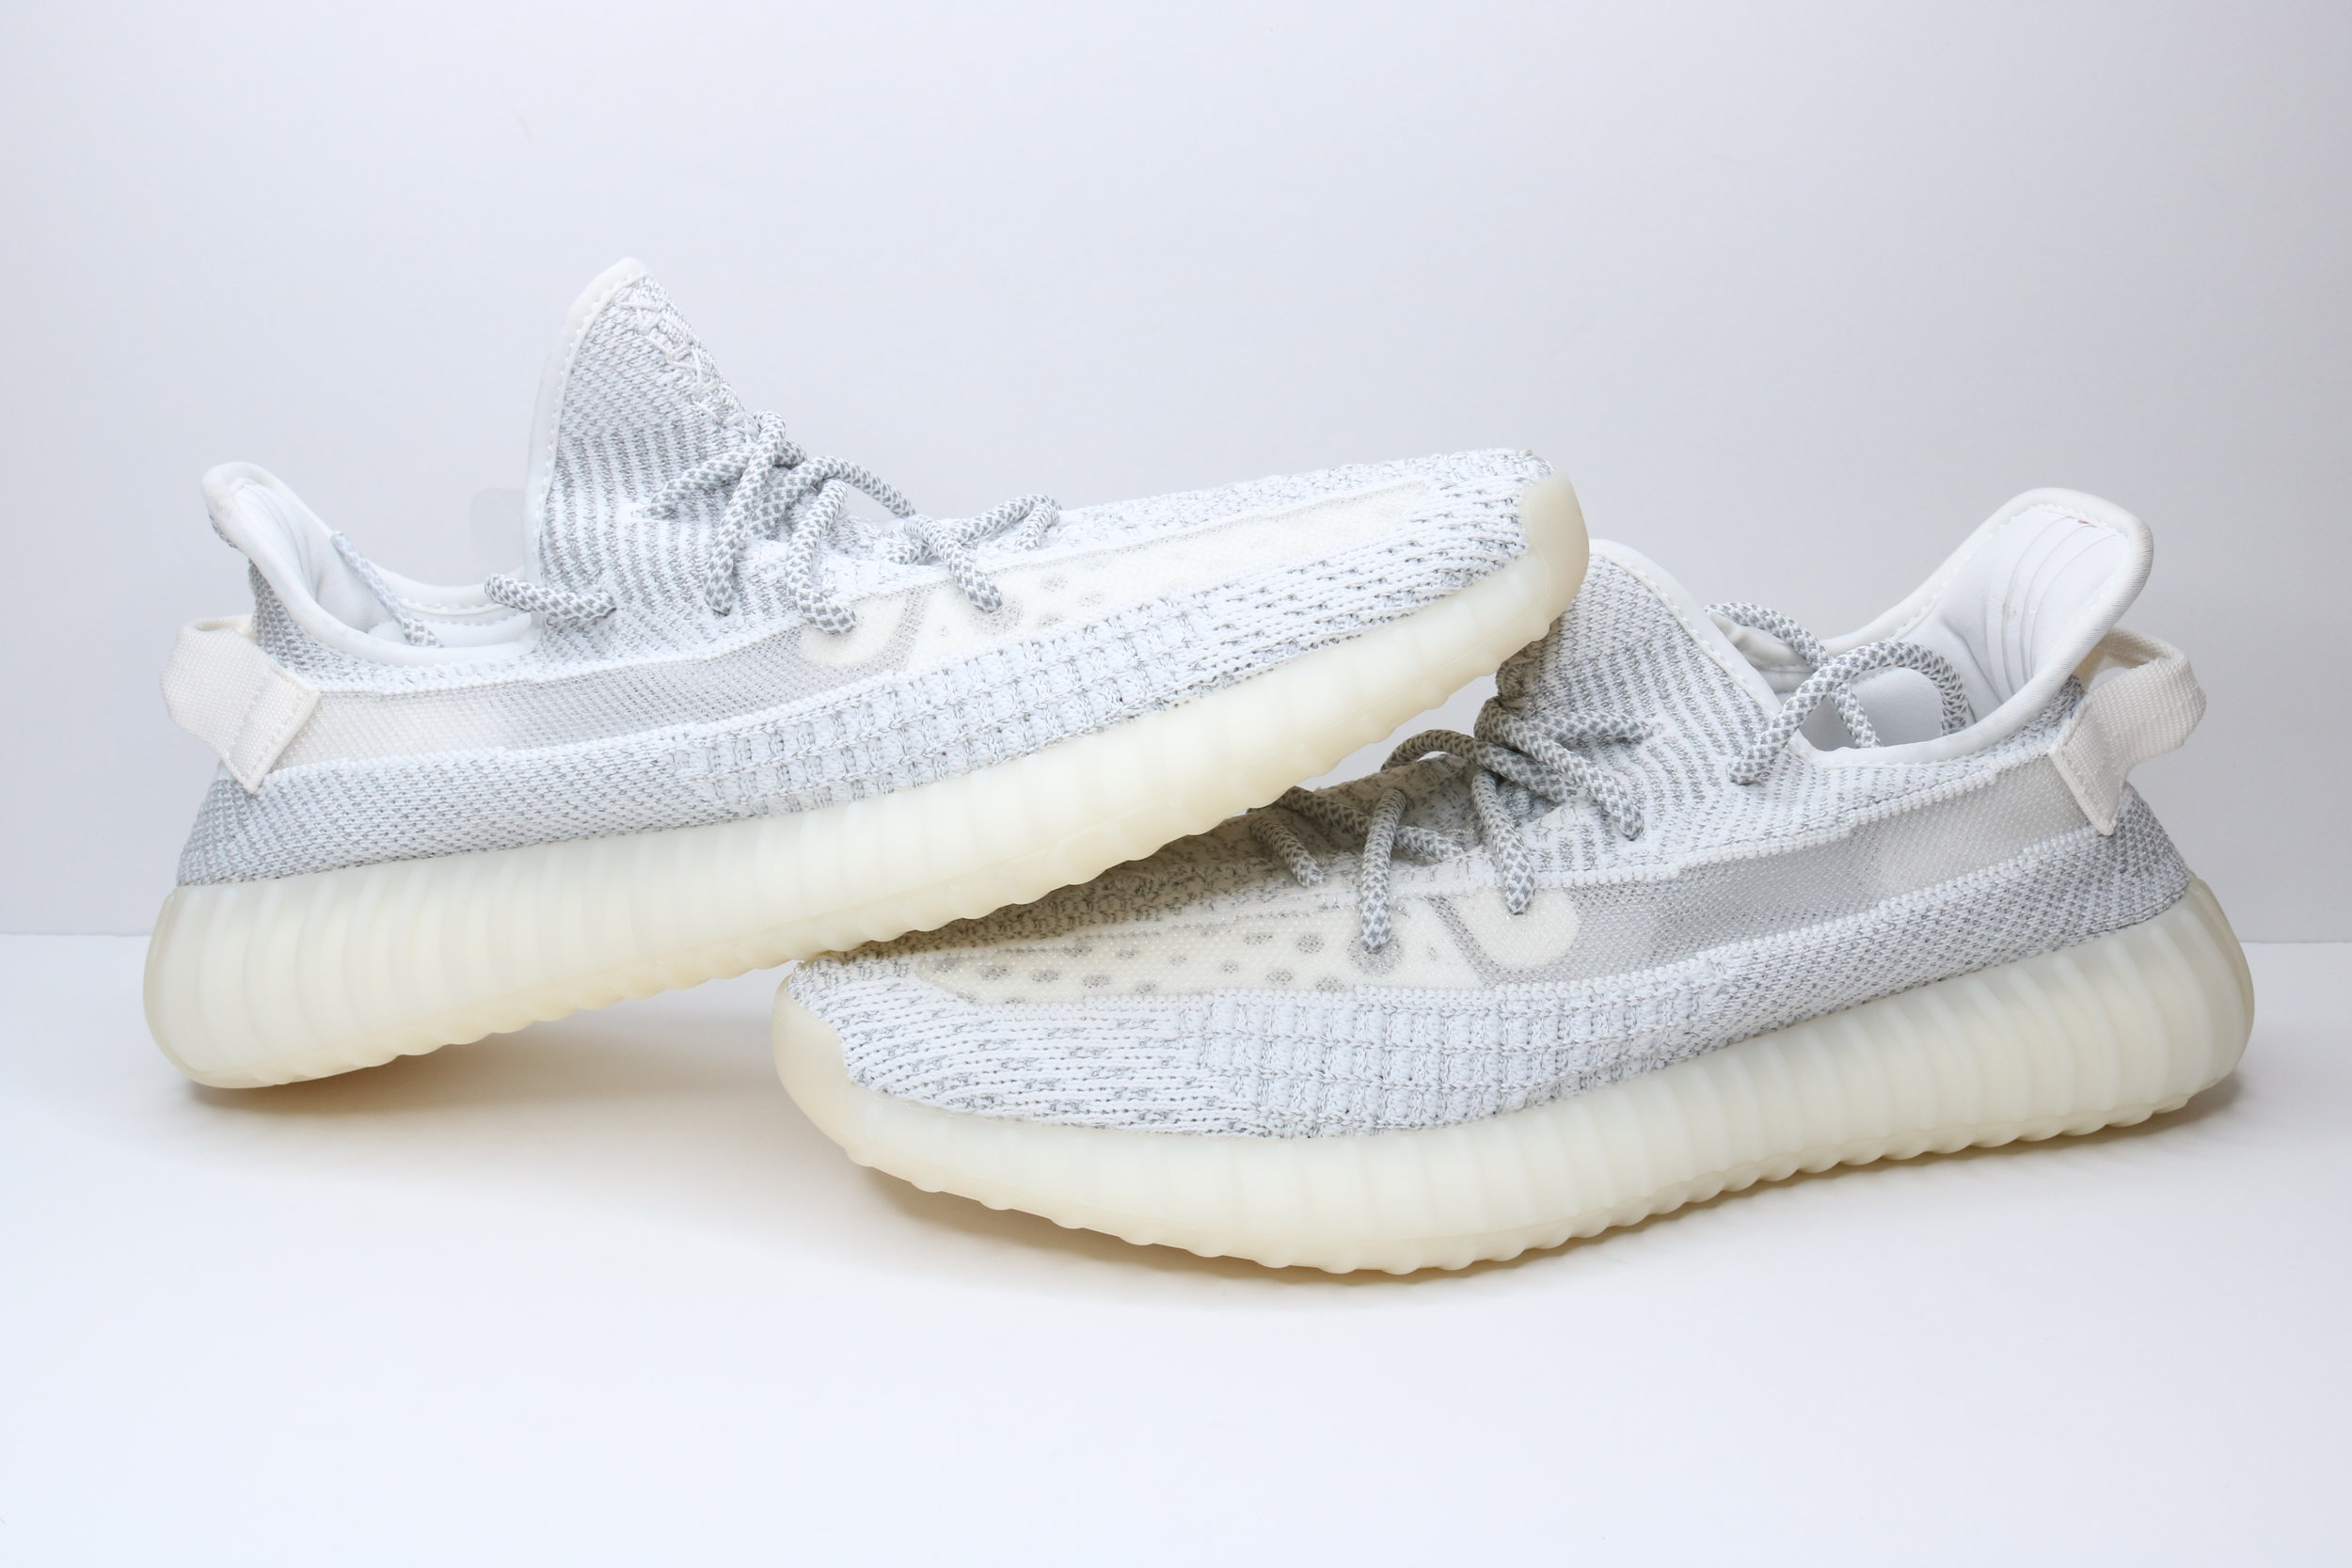 Adidas Yeezy Boost 350 V2 Static (non Reflective) Grailed